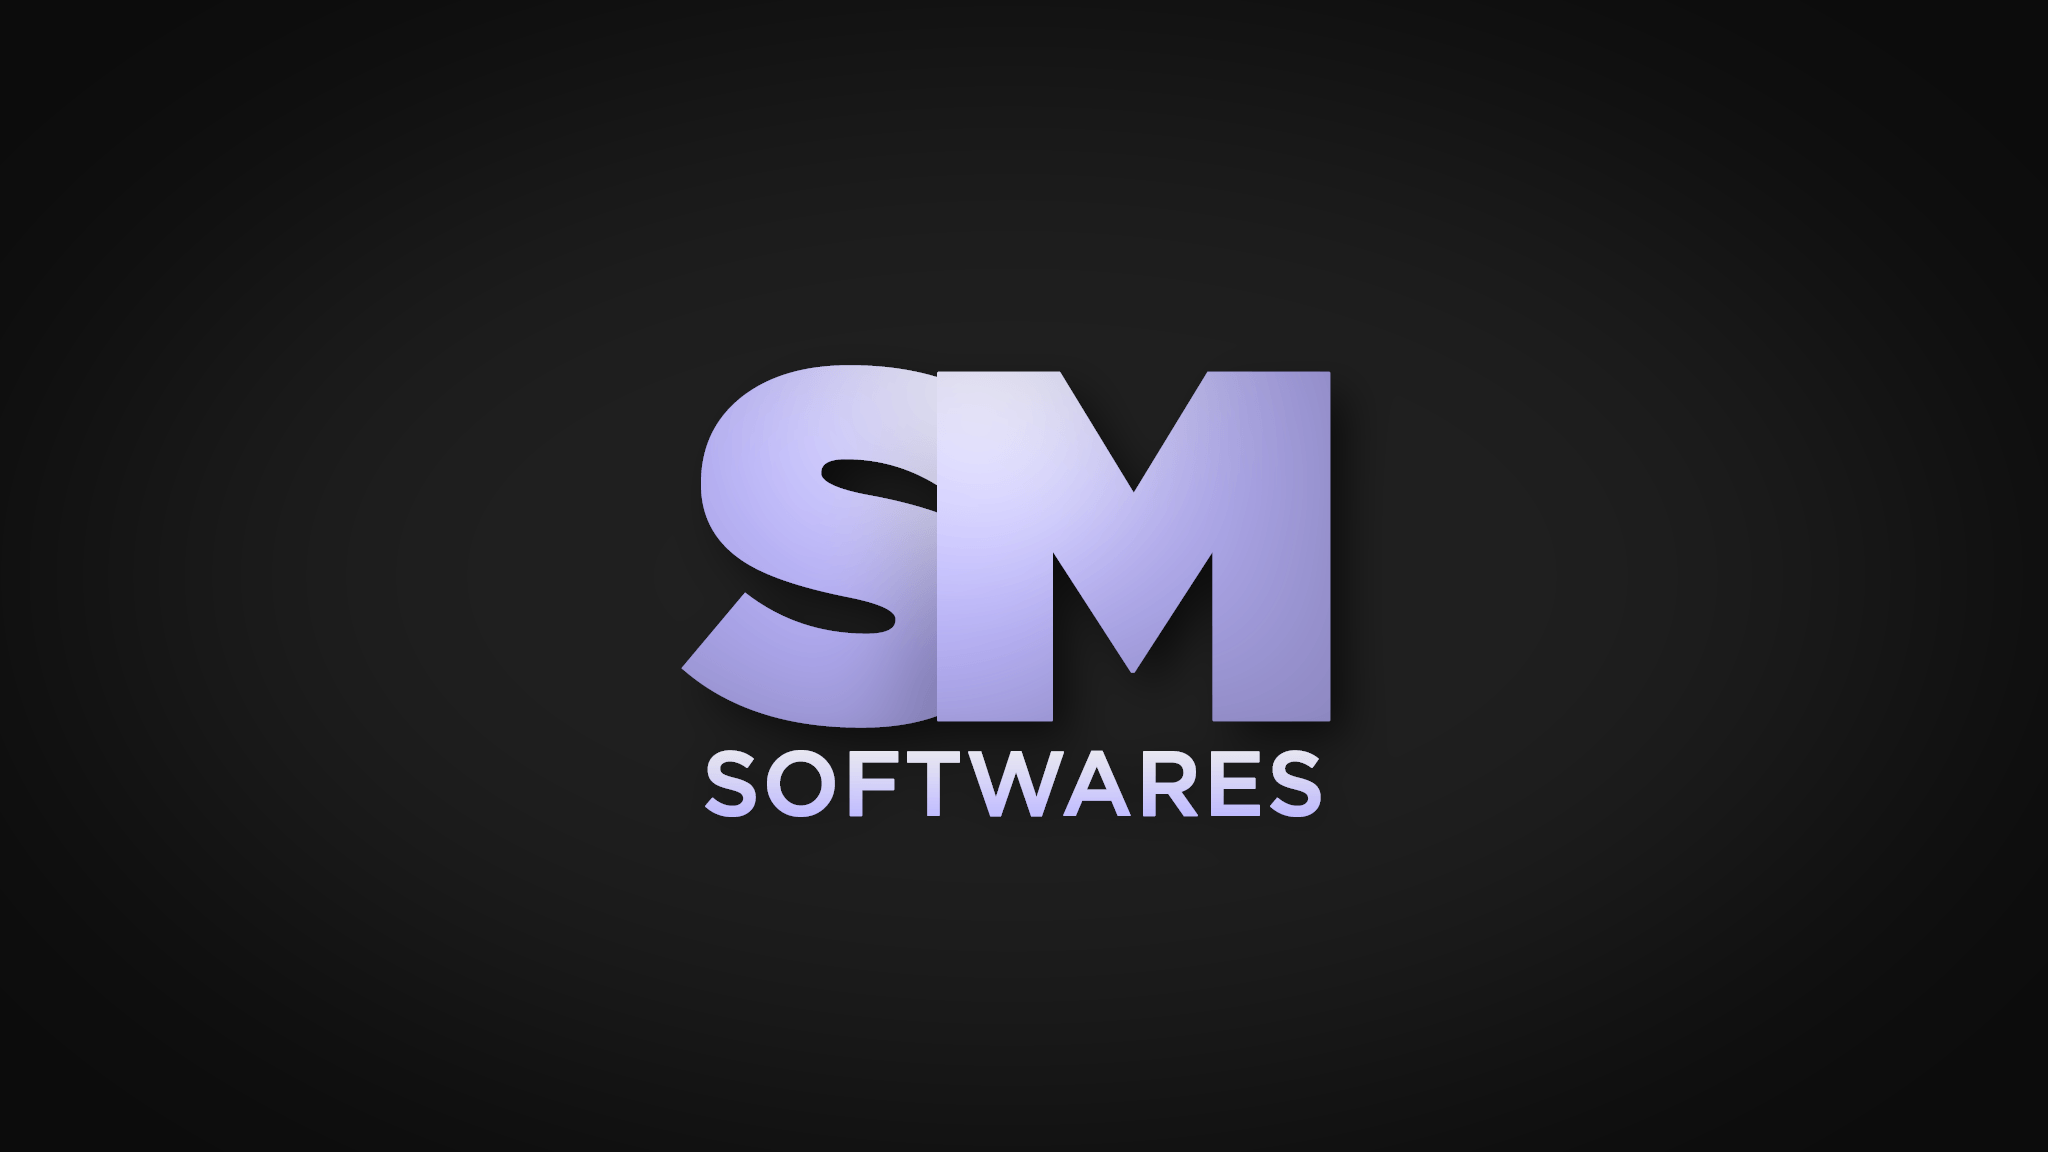 Sao Mai Softwares Logo